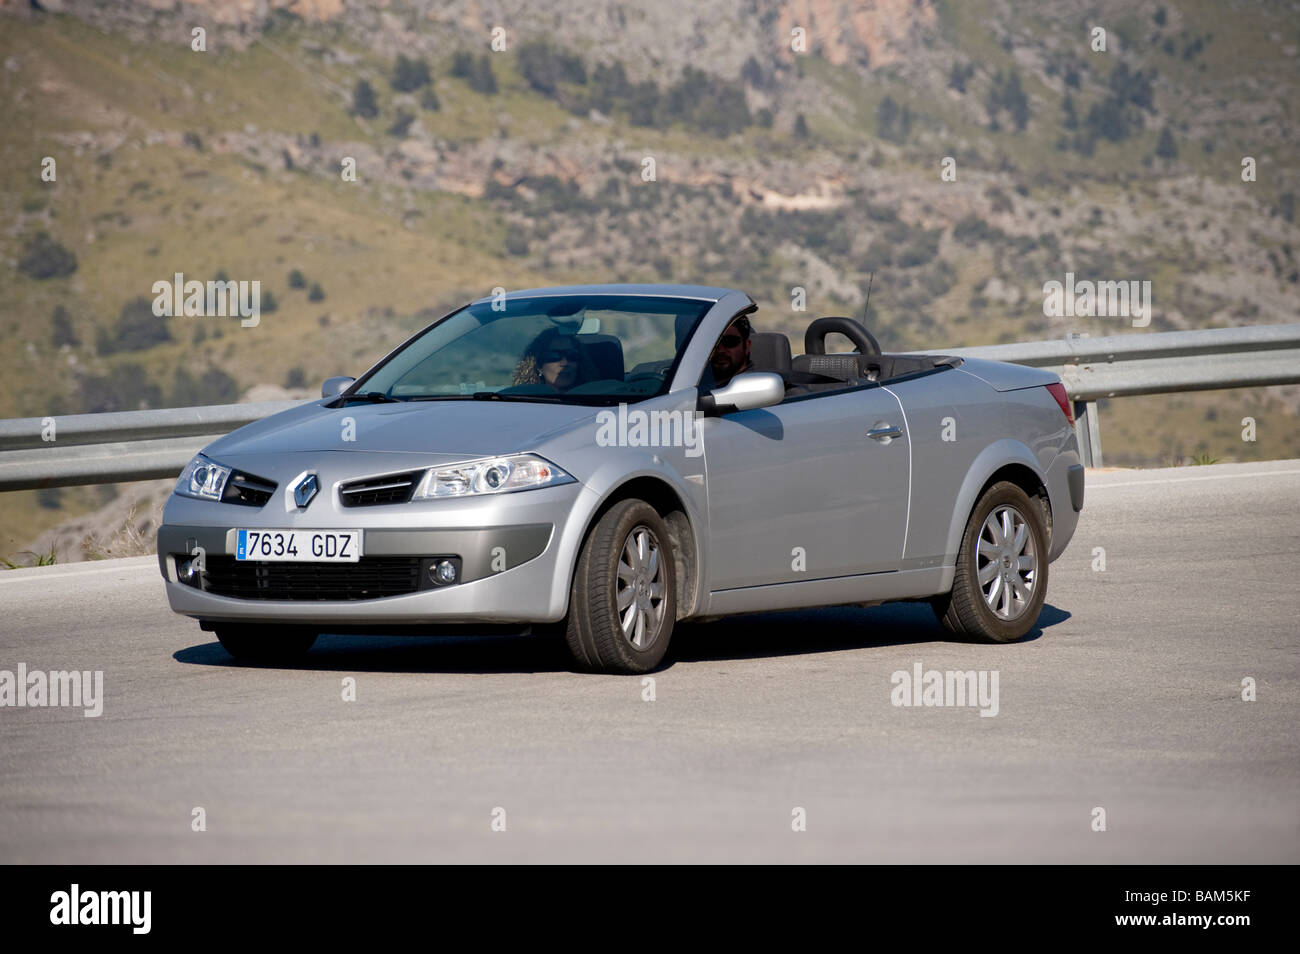 Silver Renault Megane Cc Coupe Cabriolet Being Driven Along A Road In Stock Photo Alamy